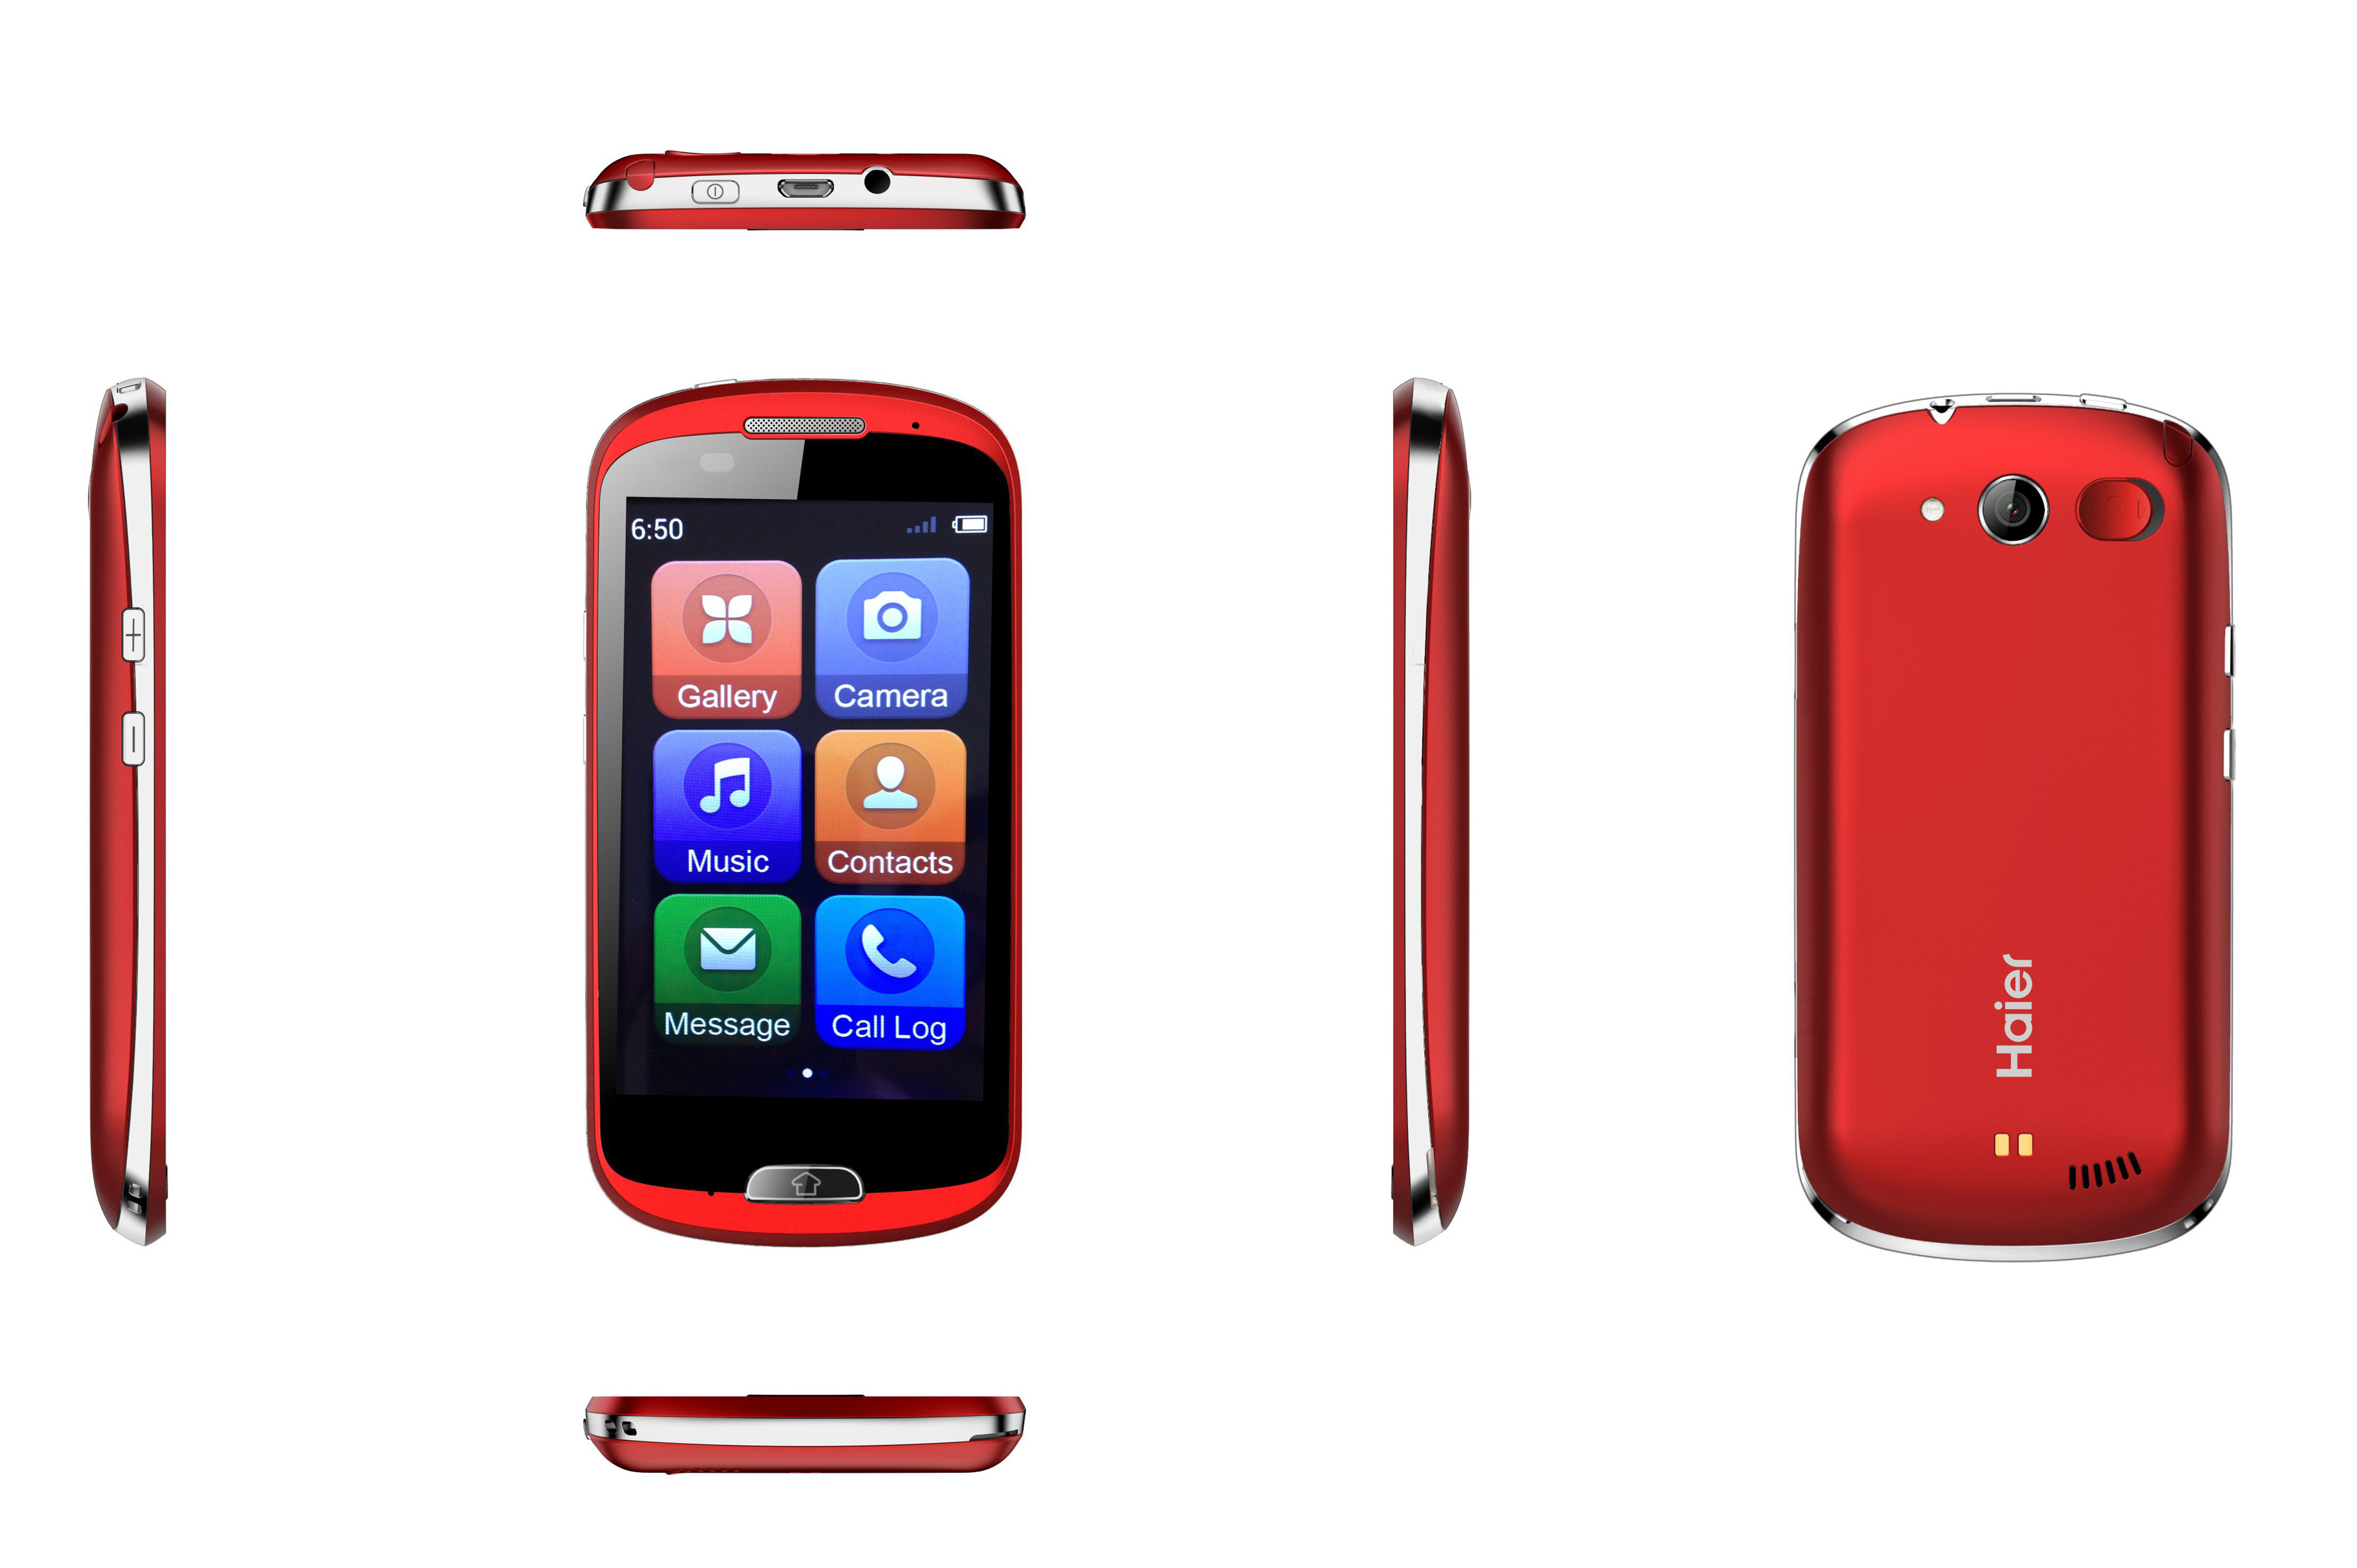 haier launches easy smartphone an easy to use smartphone for seniors silver economy. Black Bedroom Furniture Sets. Home Design Ideas